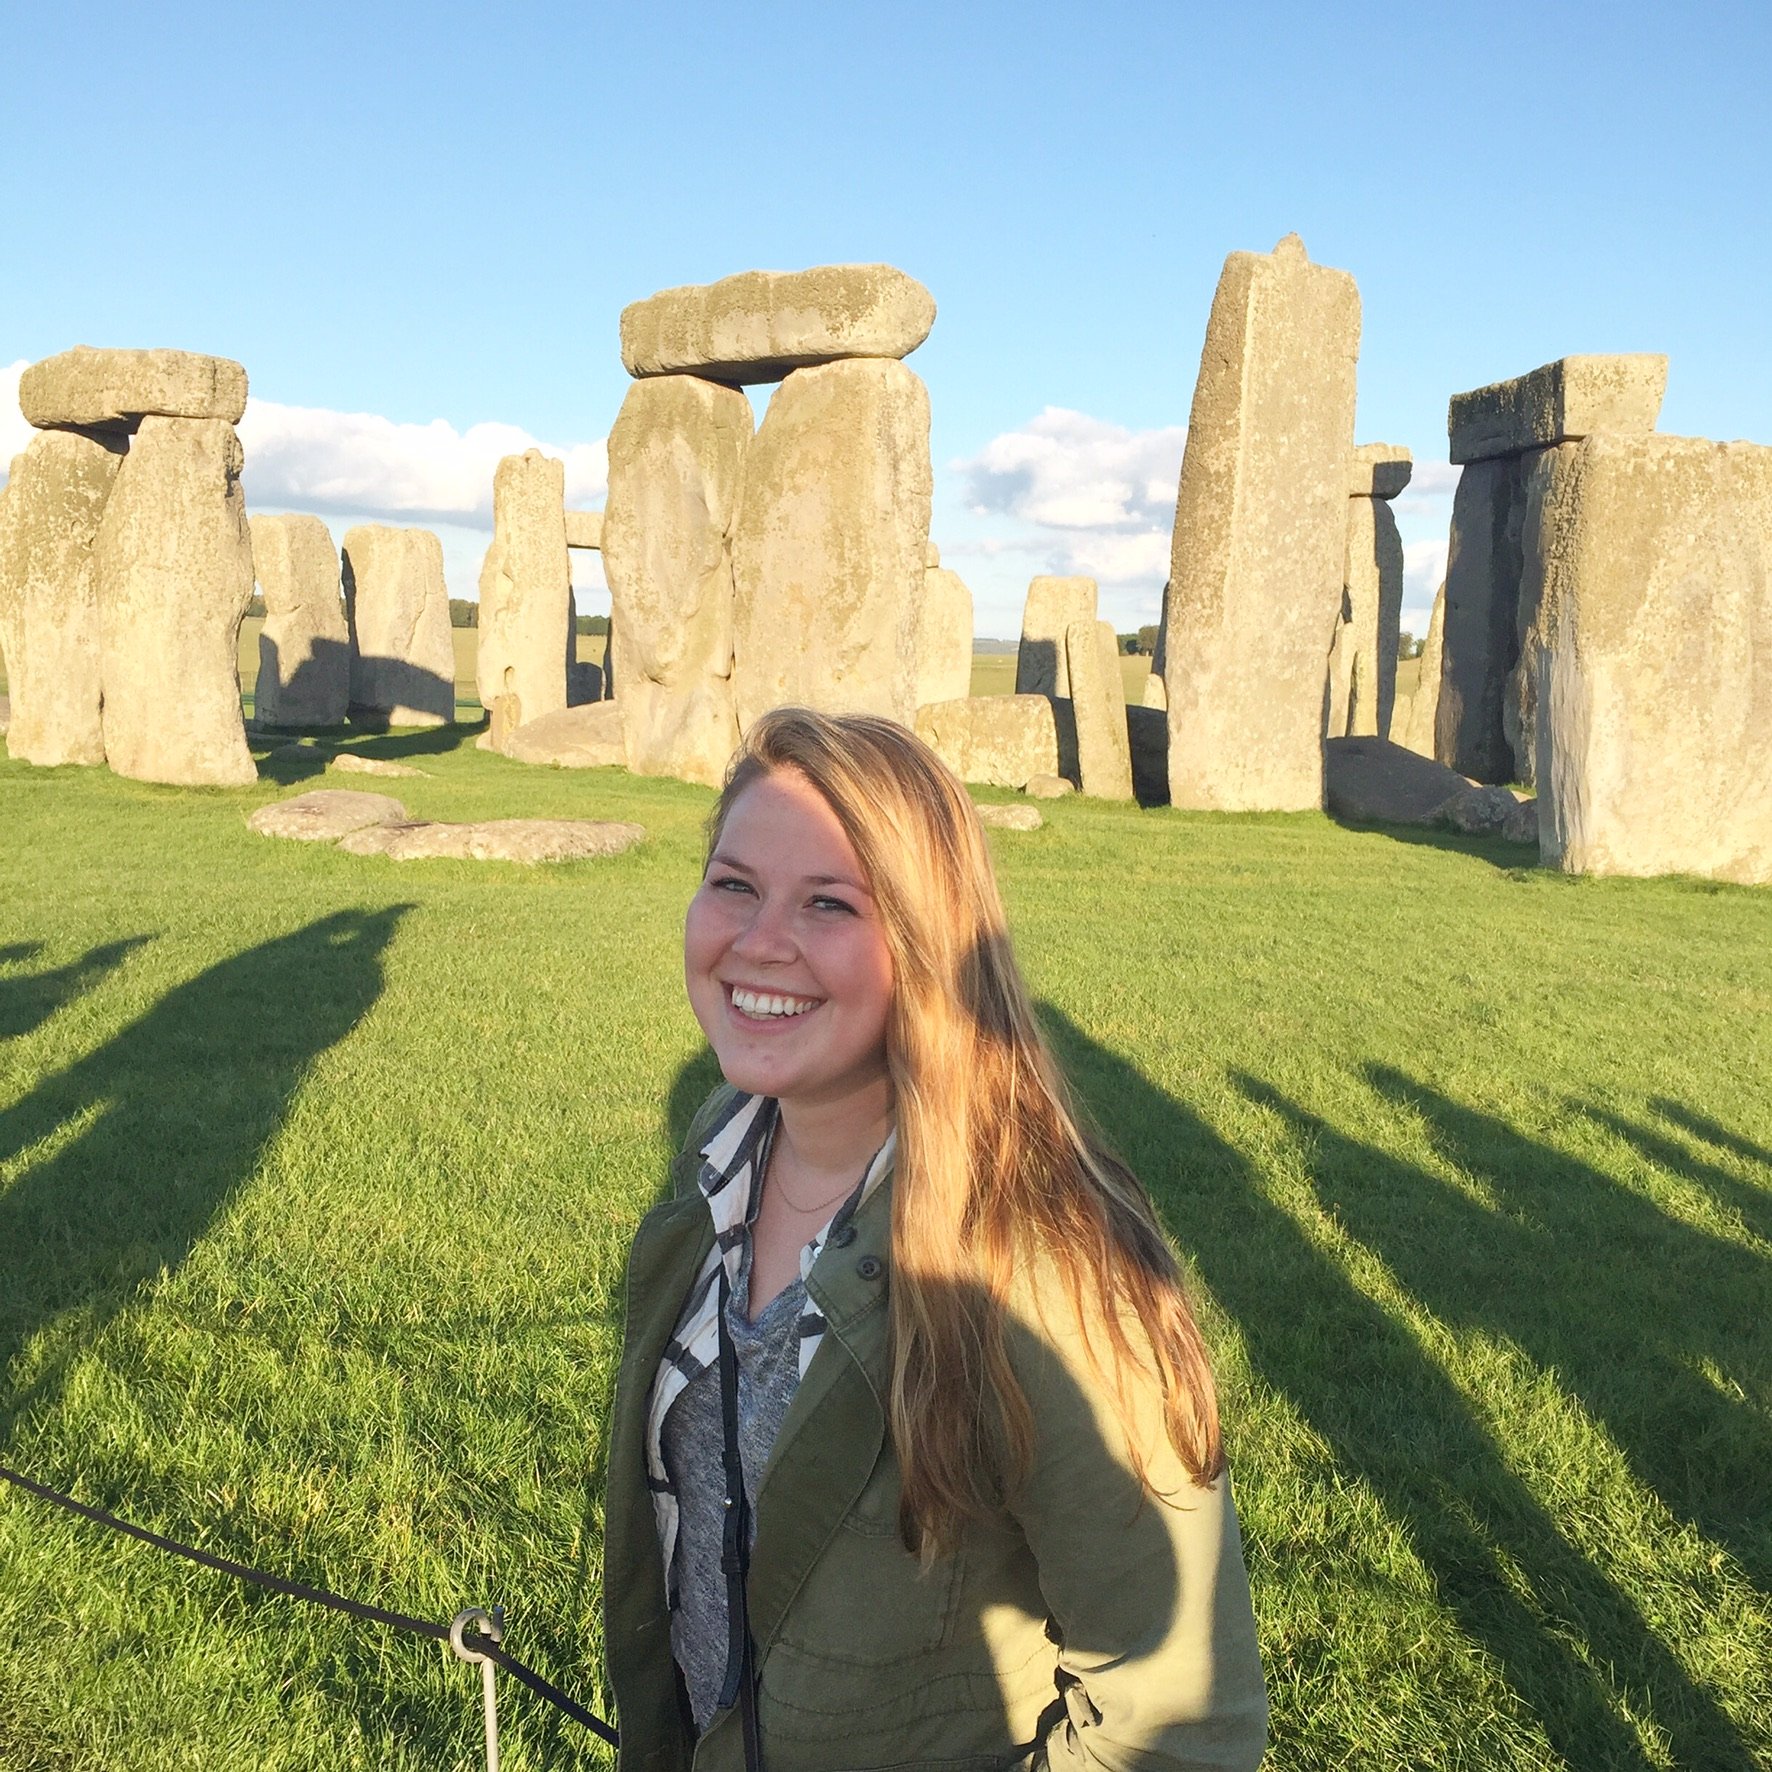 Marin Meiners enjoys a sunny day at Stonehenge in England.